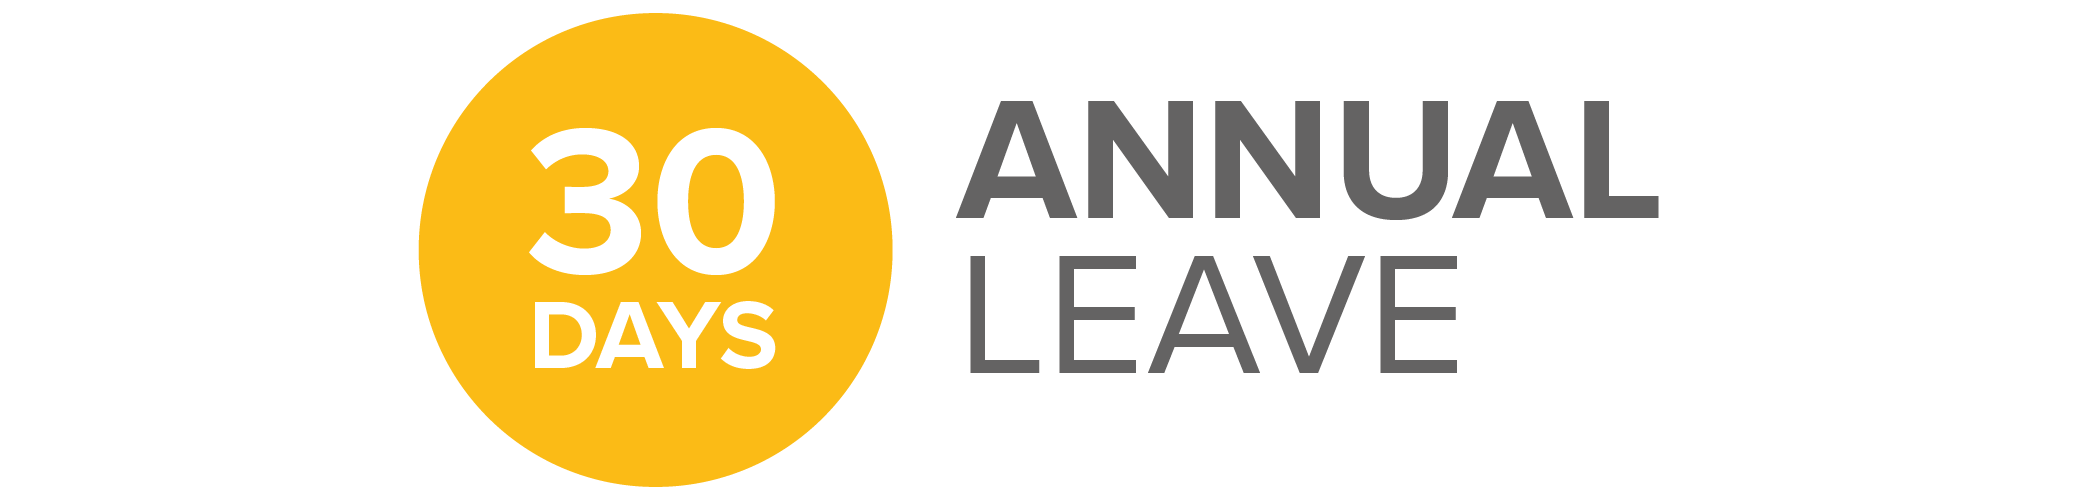 30 days annual leave